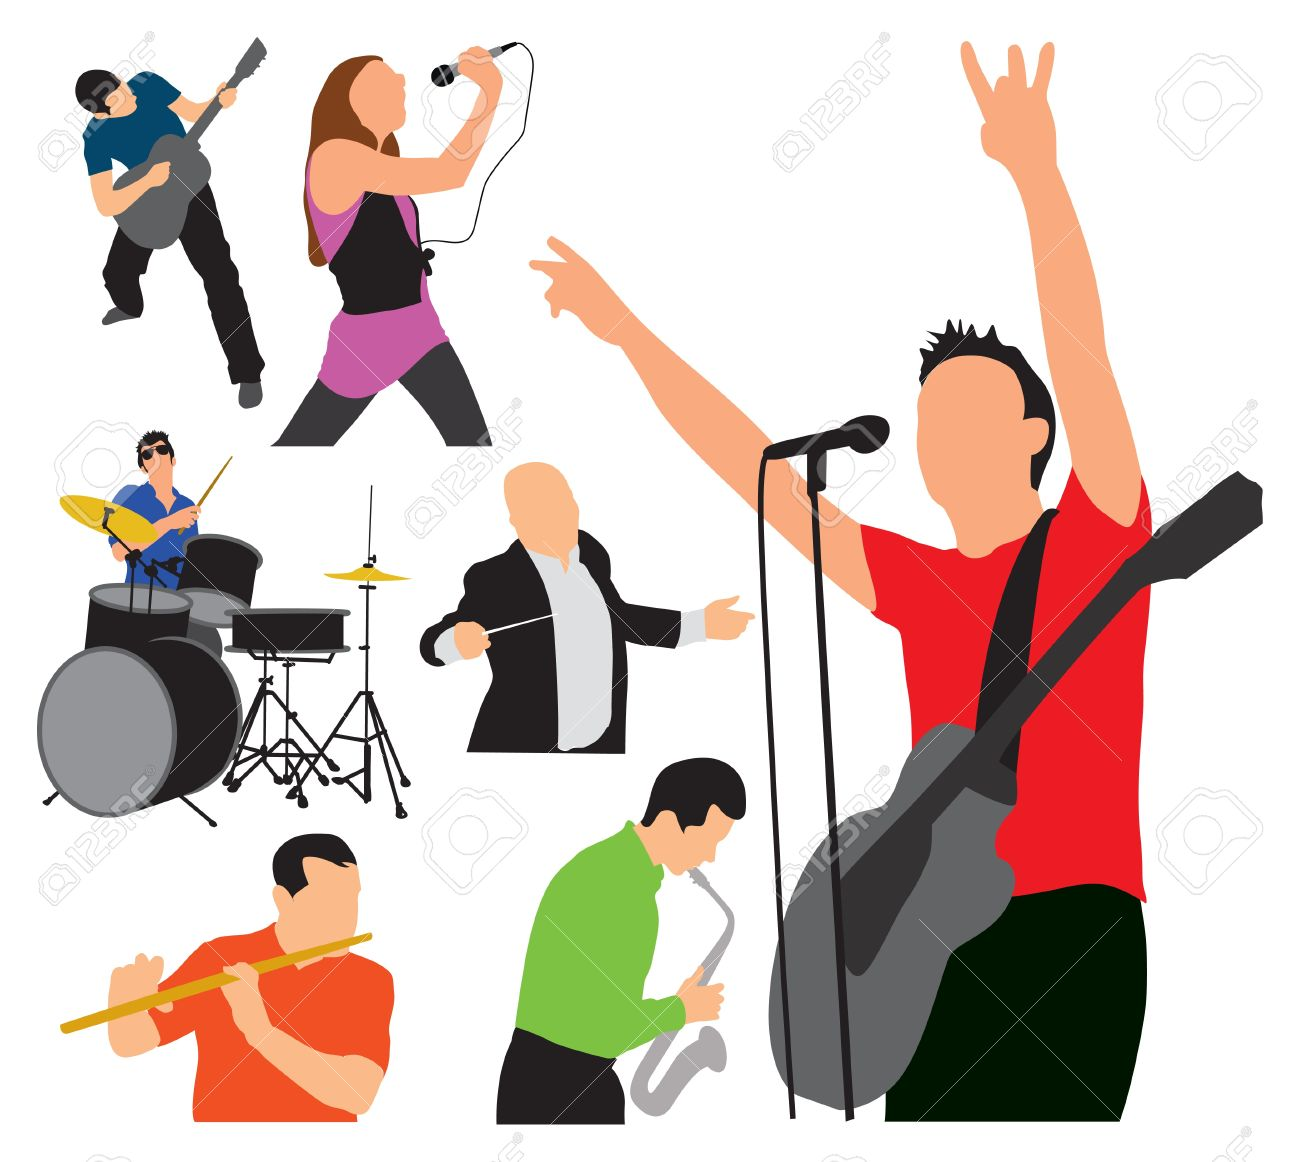 ARTISTIC EXPRESSIONS music illustration Stock Vector - 21448151